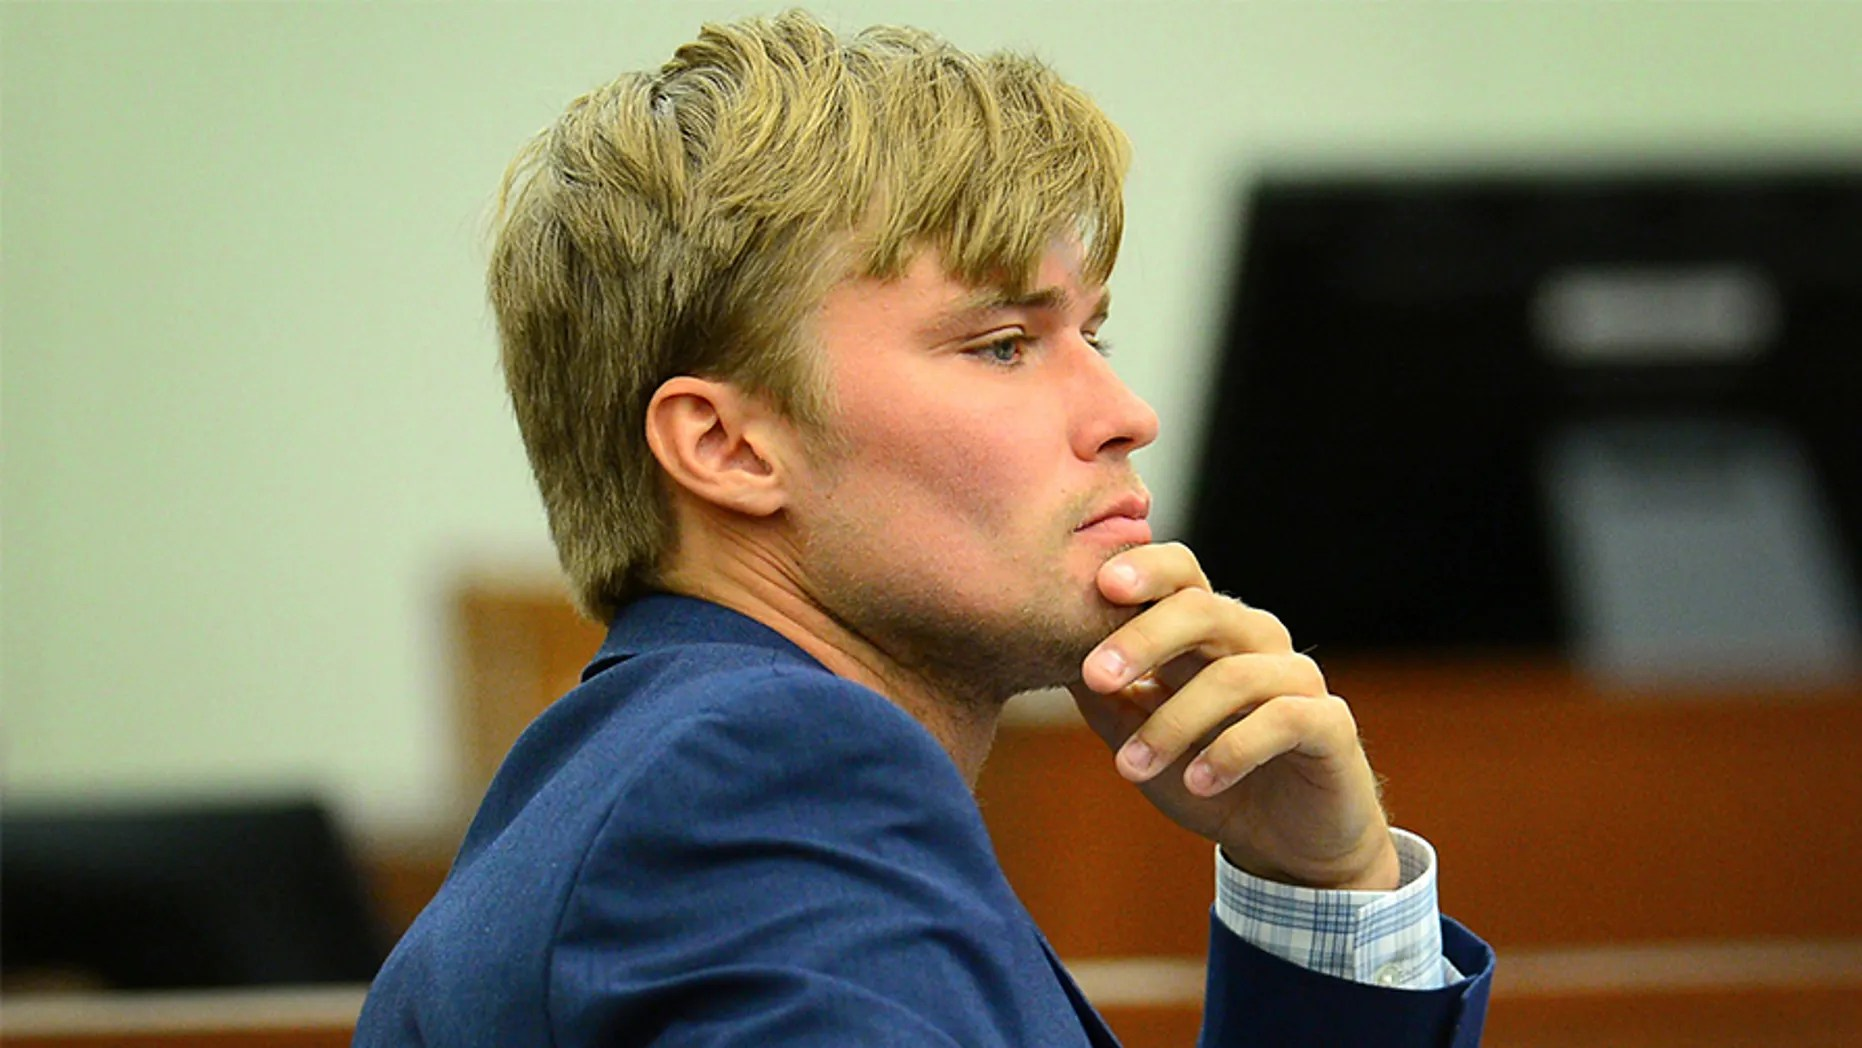 Former college quarterback Kevin Olsen was reportedly found not guilty Wednesday after being accused of rape.